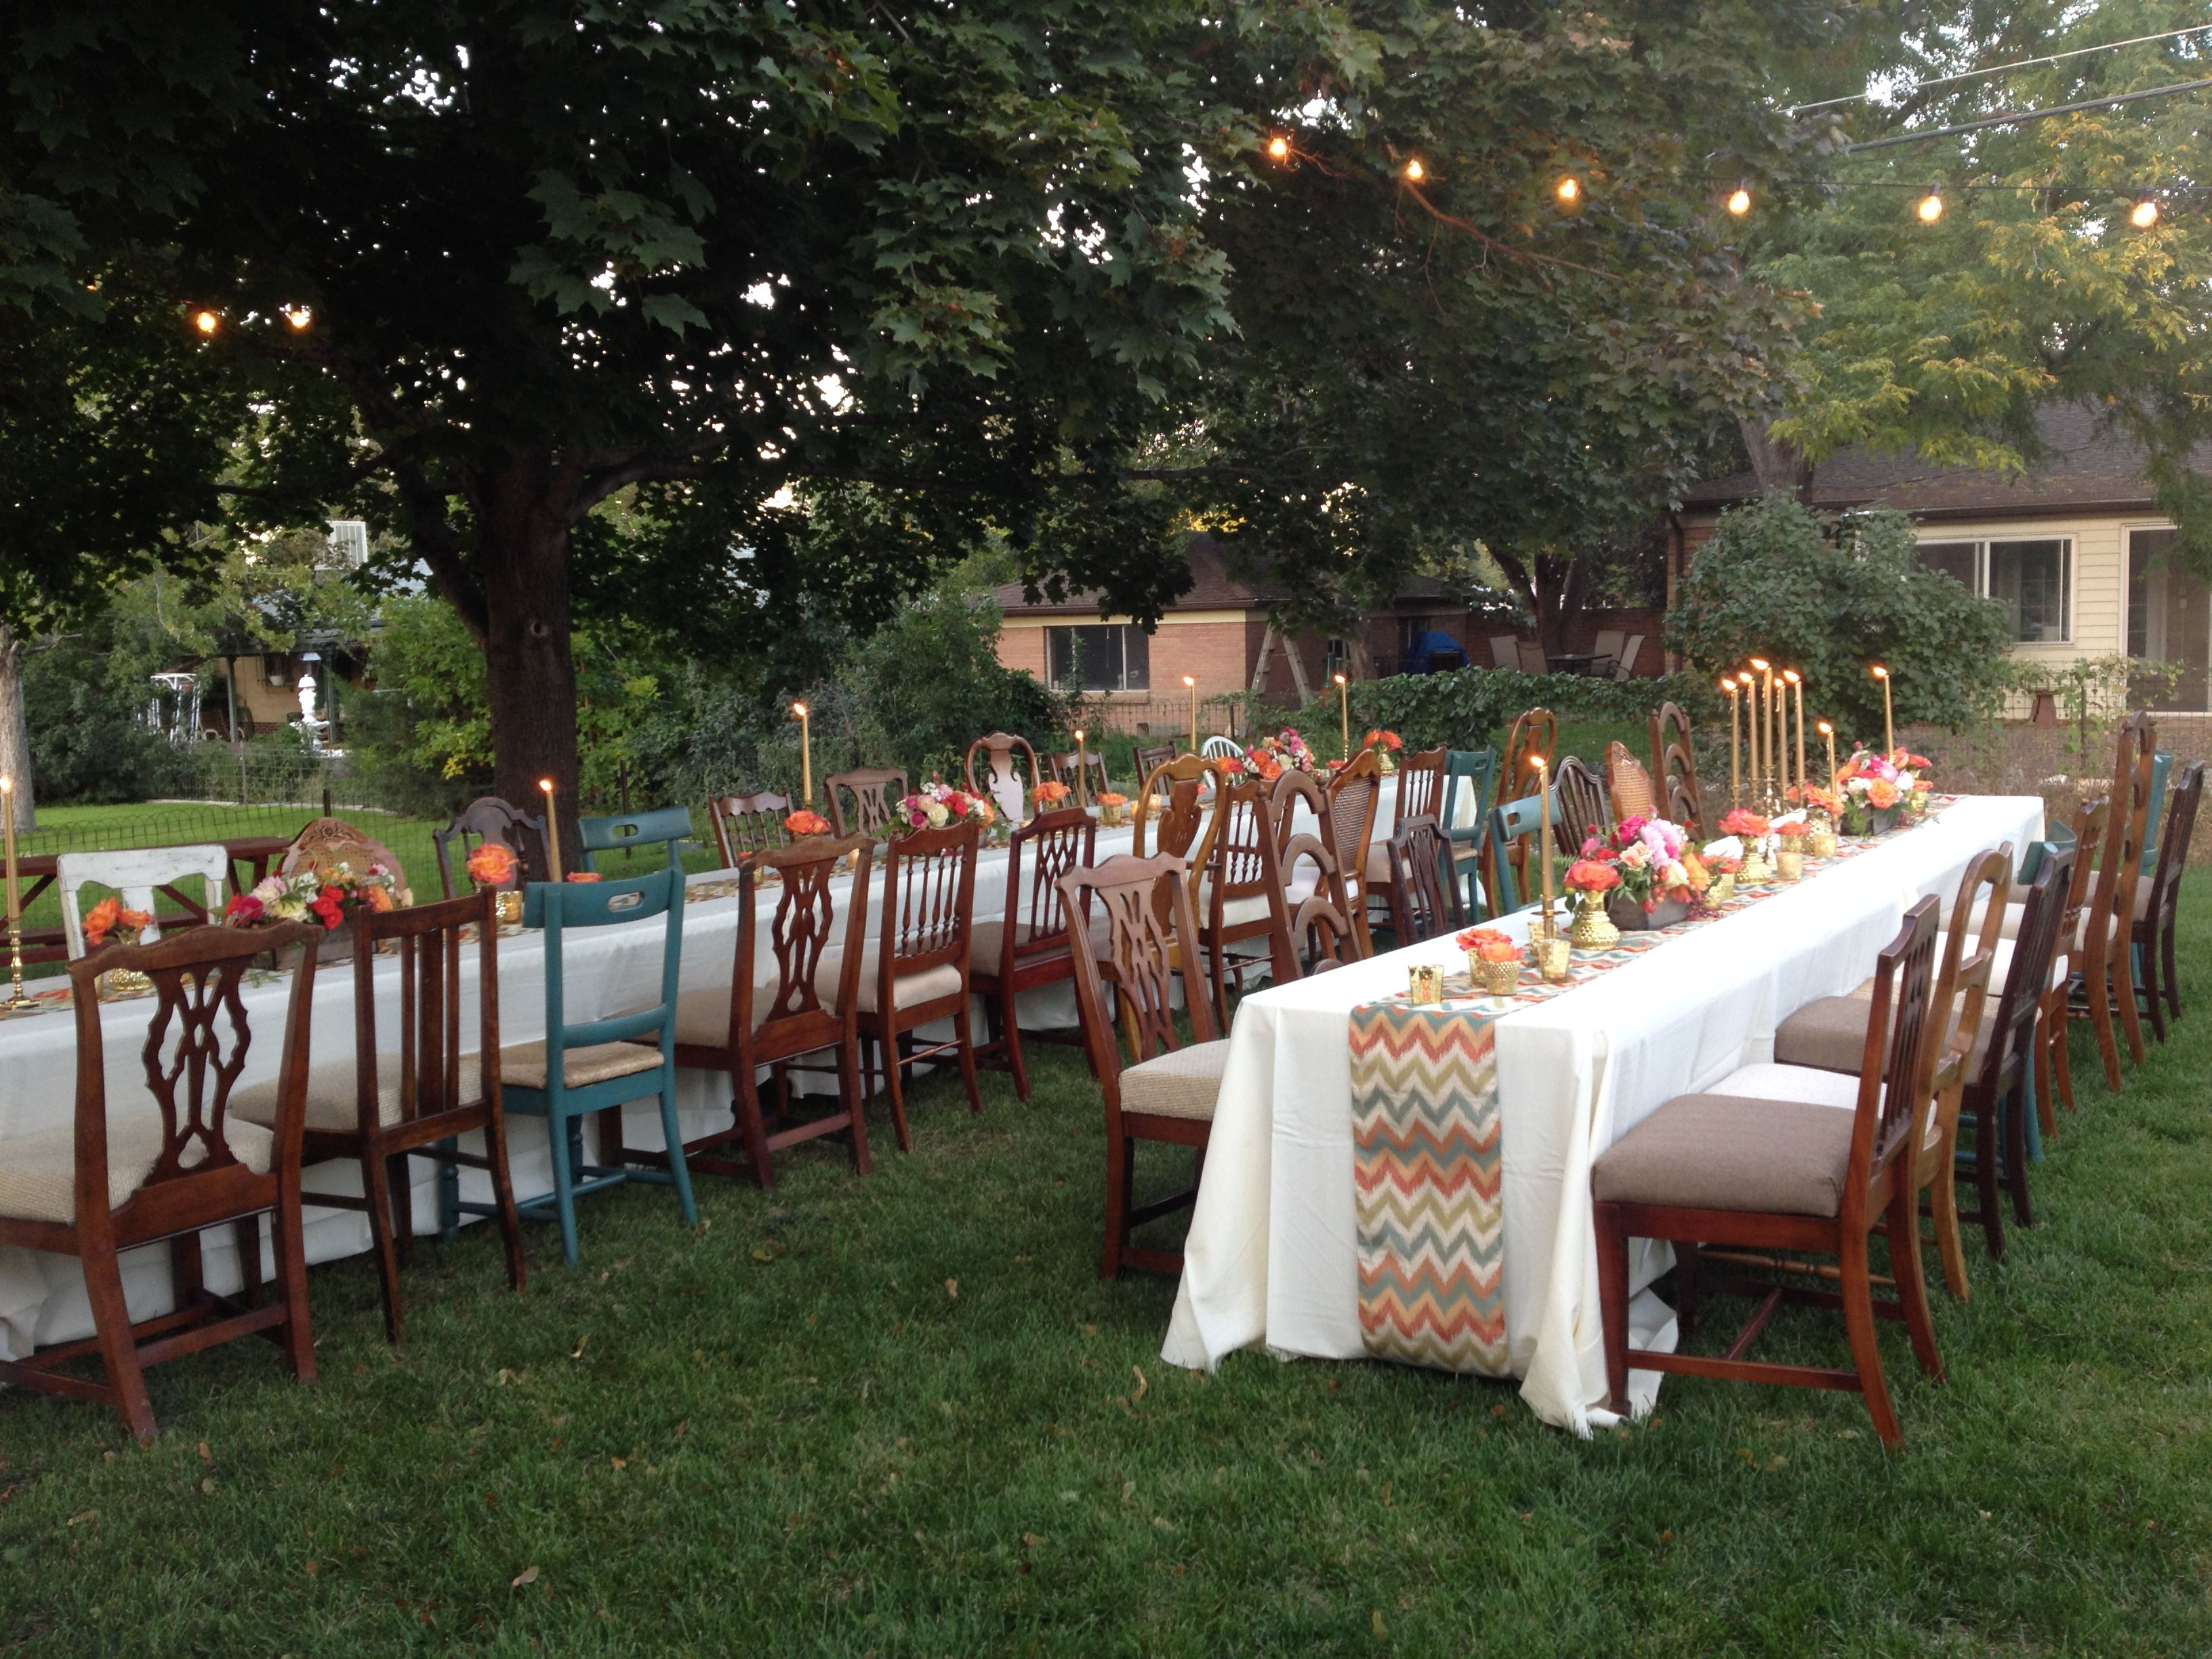 brownchairs party jpg 3264 2448 wedding ideas pinterest